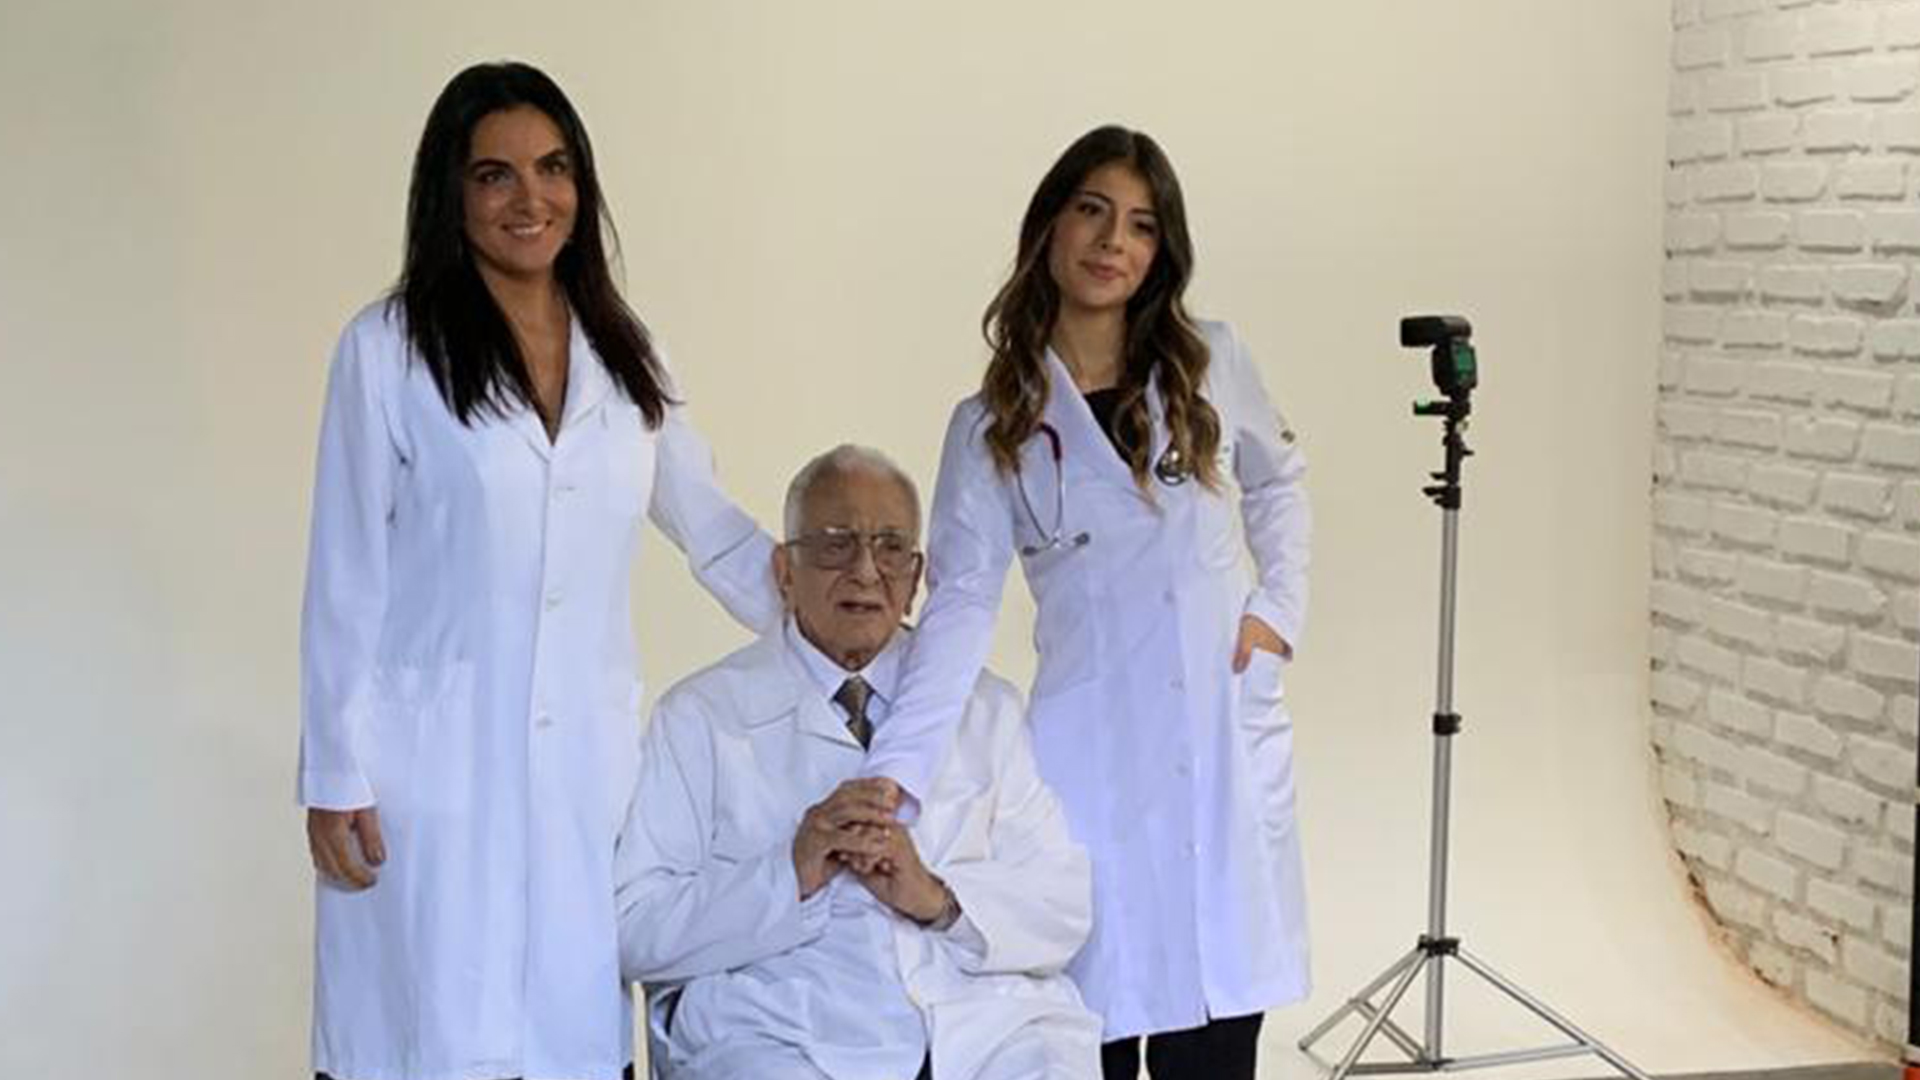 Entrevista do Professor Dr. Daibis Rachid, Titular do curso de Urologia